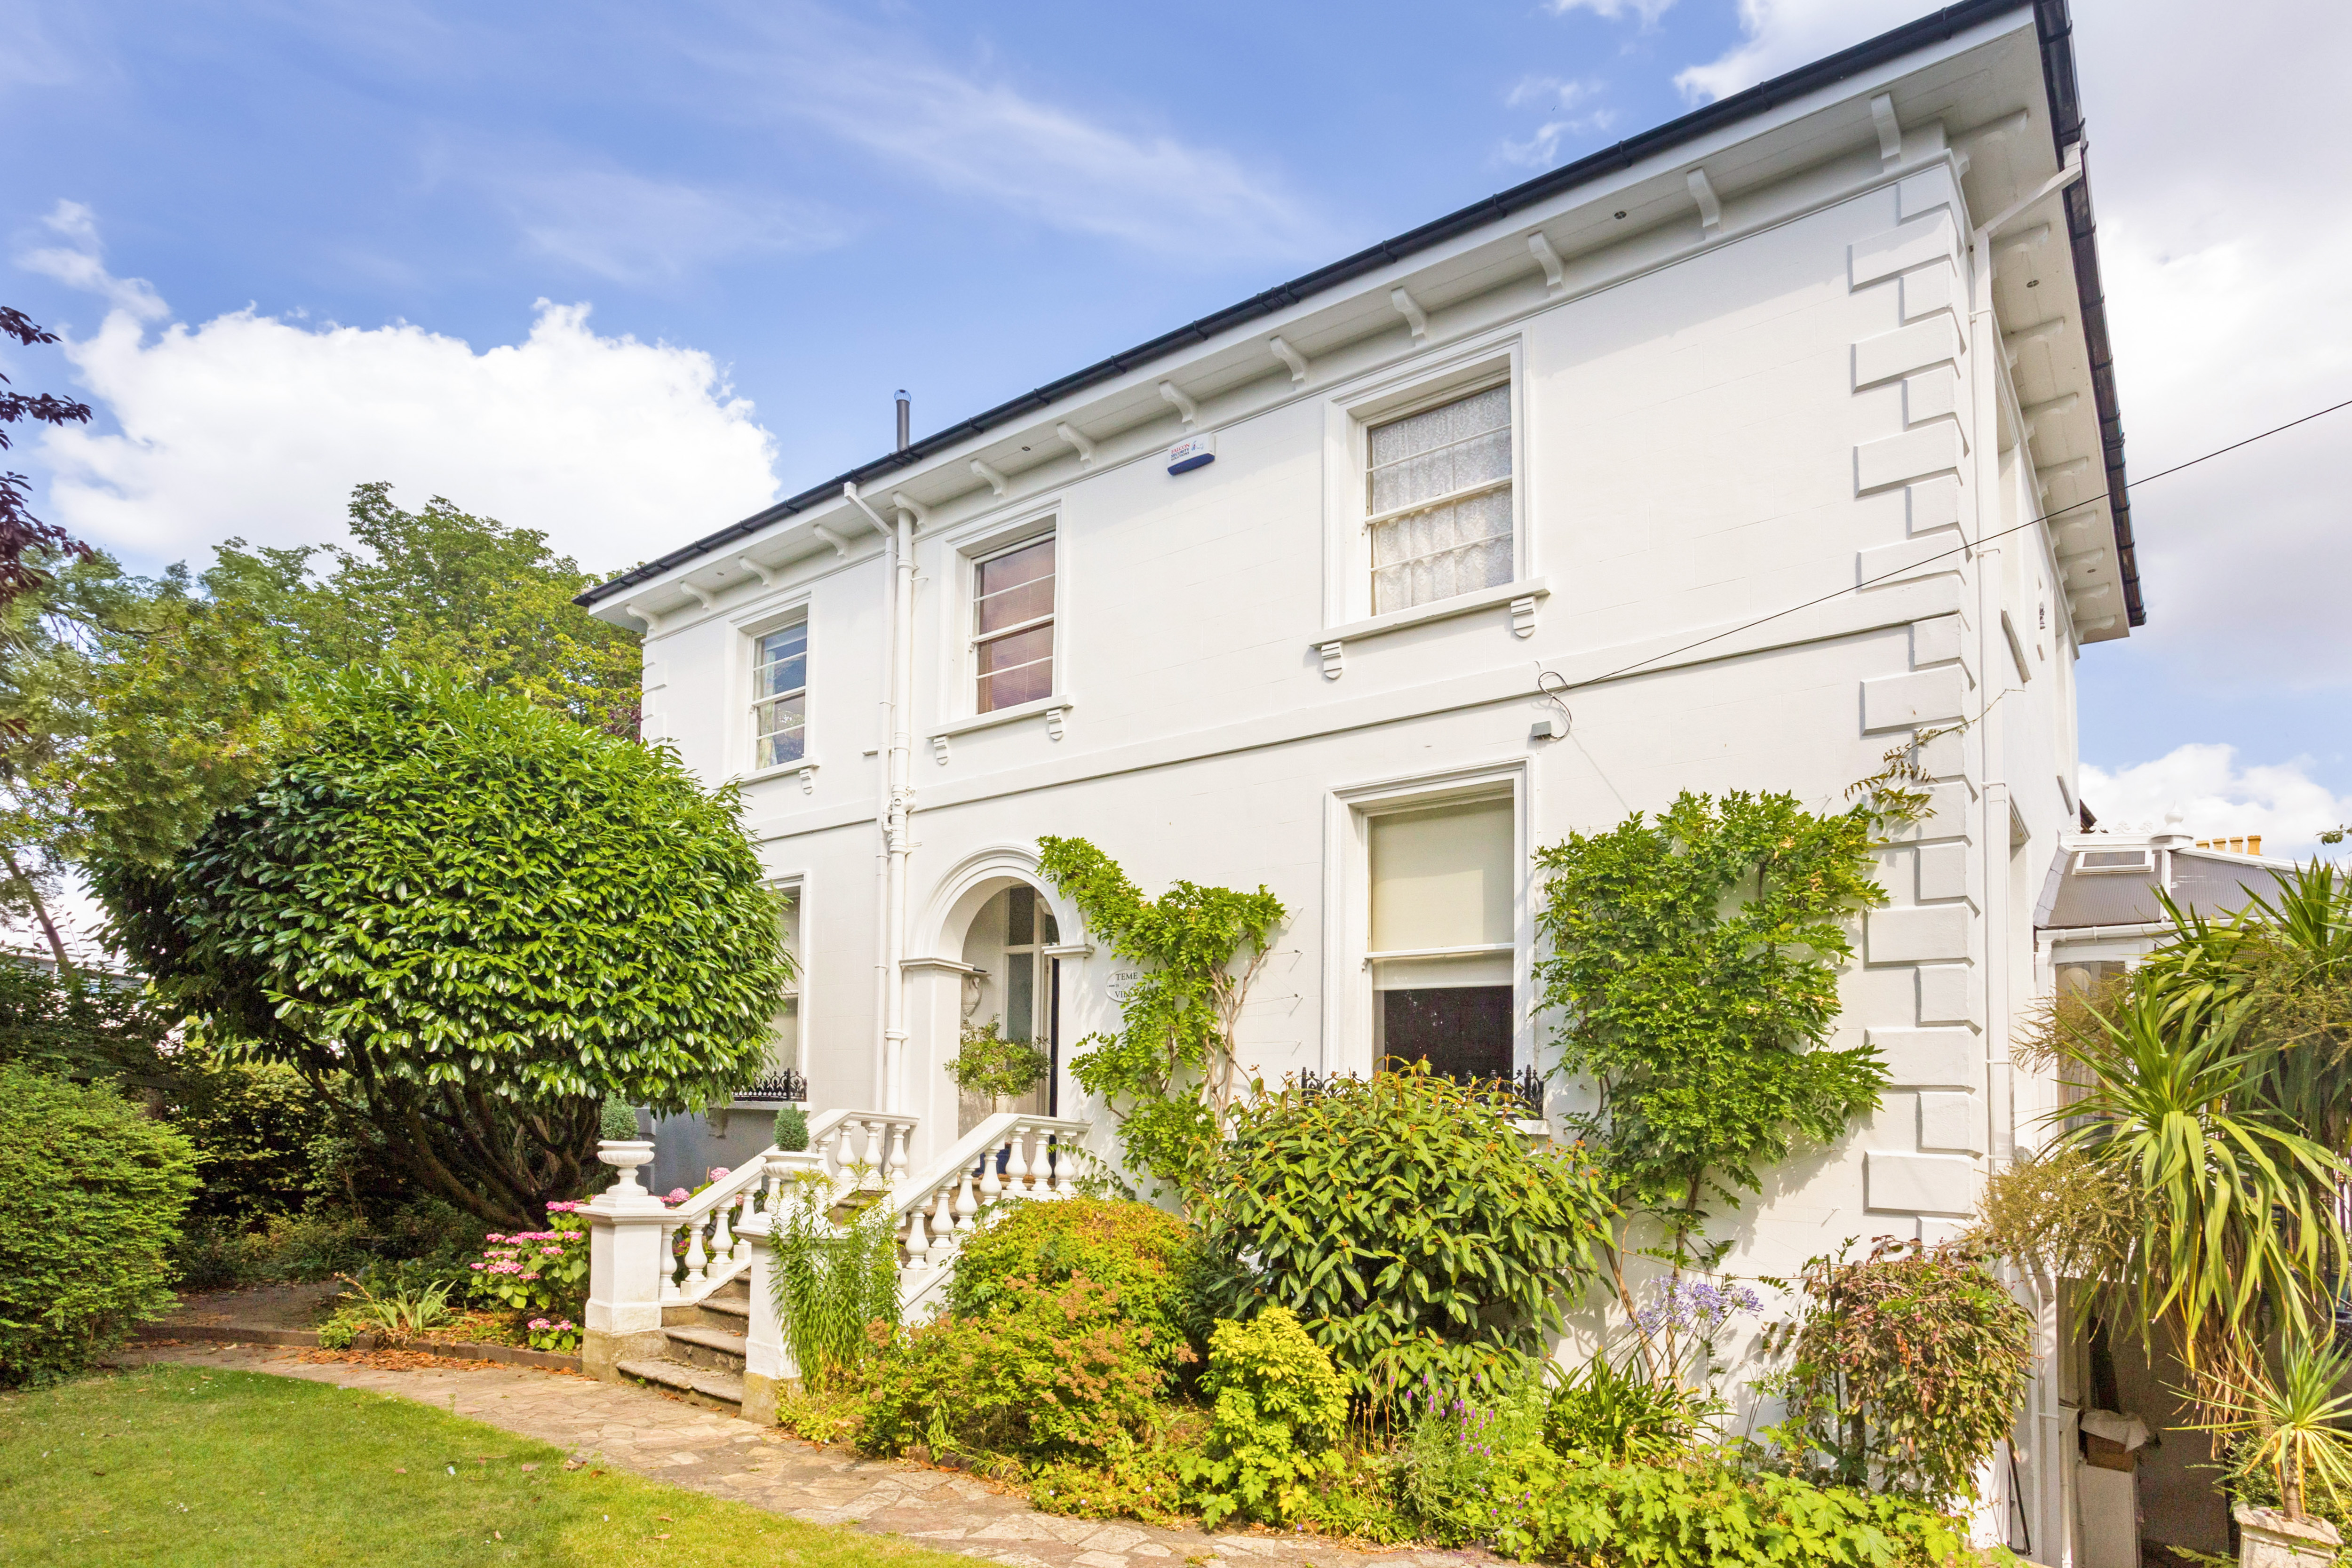 A truly elegant period villa just a few minutes from Cheltenham racecourse that's full of potential - Country Life